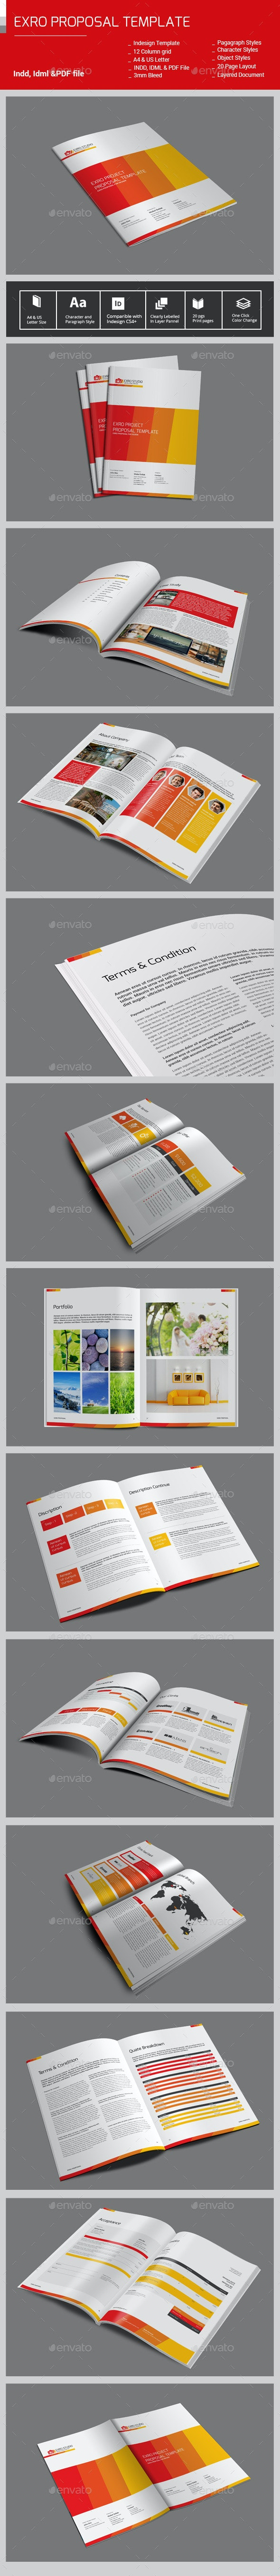 Exro ProposalTemplate - Proposals & Invoices Stationery